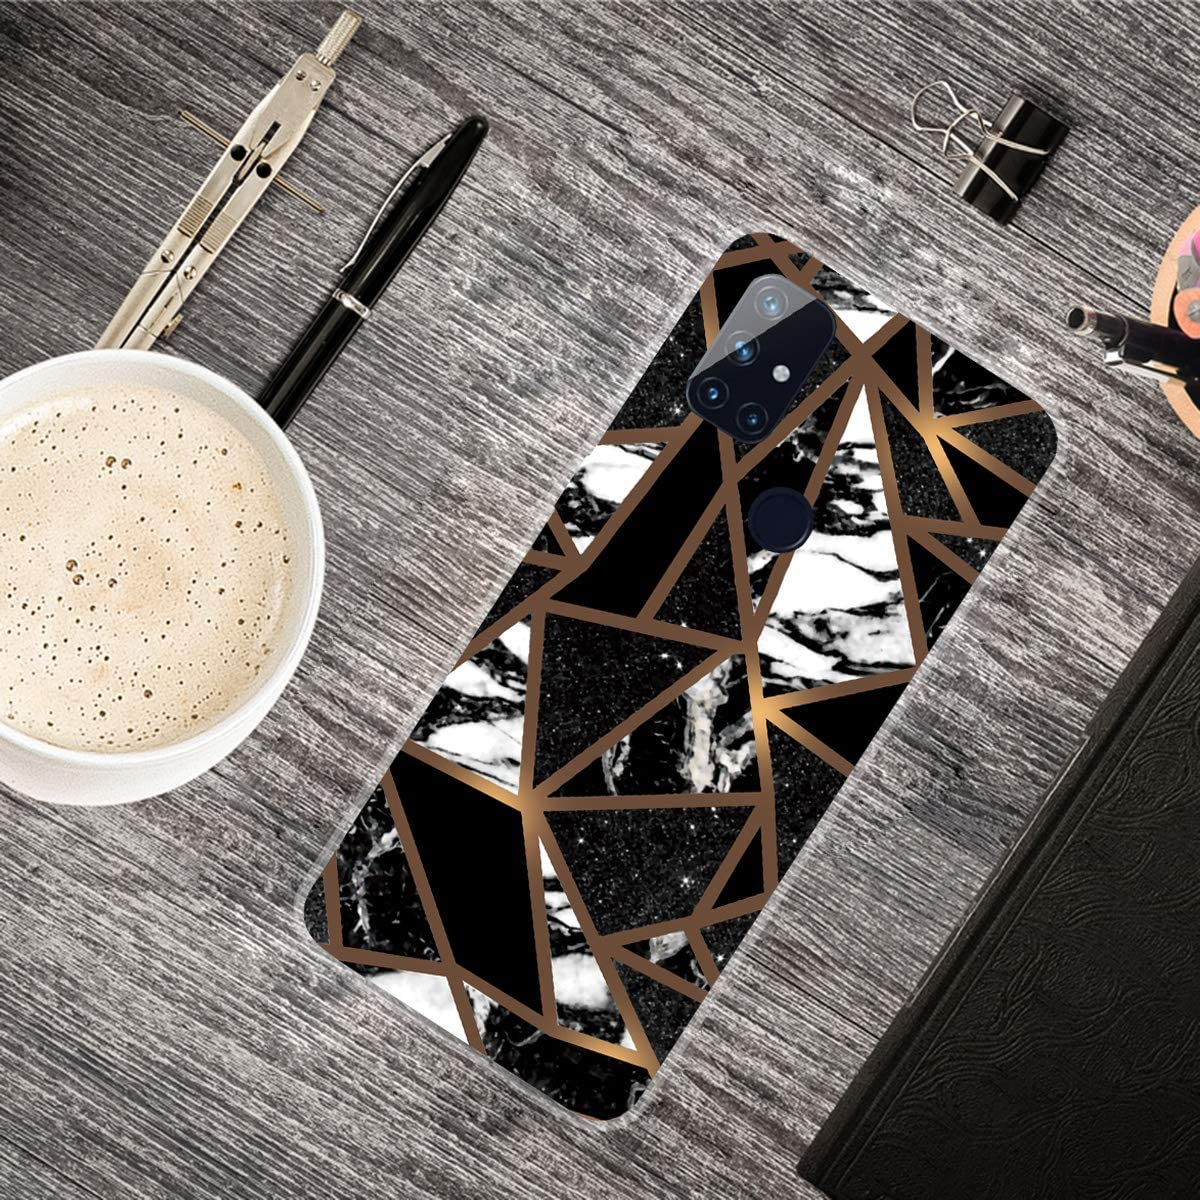 JMTALL for OnePlus Nord 100 5G Shockproof Silicone Phone Case Marble Design Clear Cover Geometric Yellow Black Pattern Rubber Bumper TPU Soft Protective Case for OnePlus Nord 100 5G